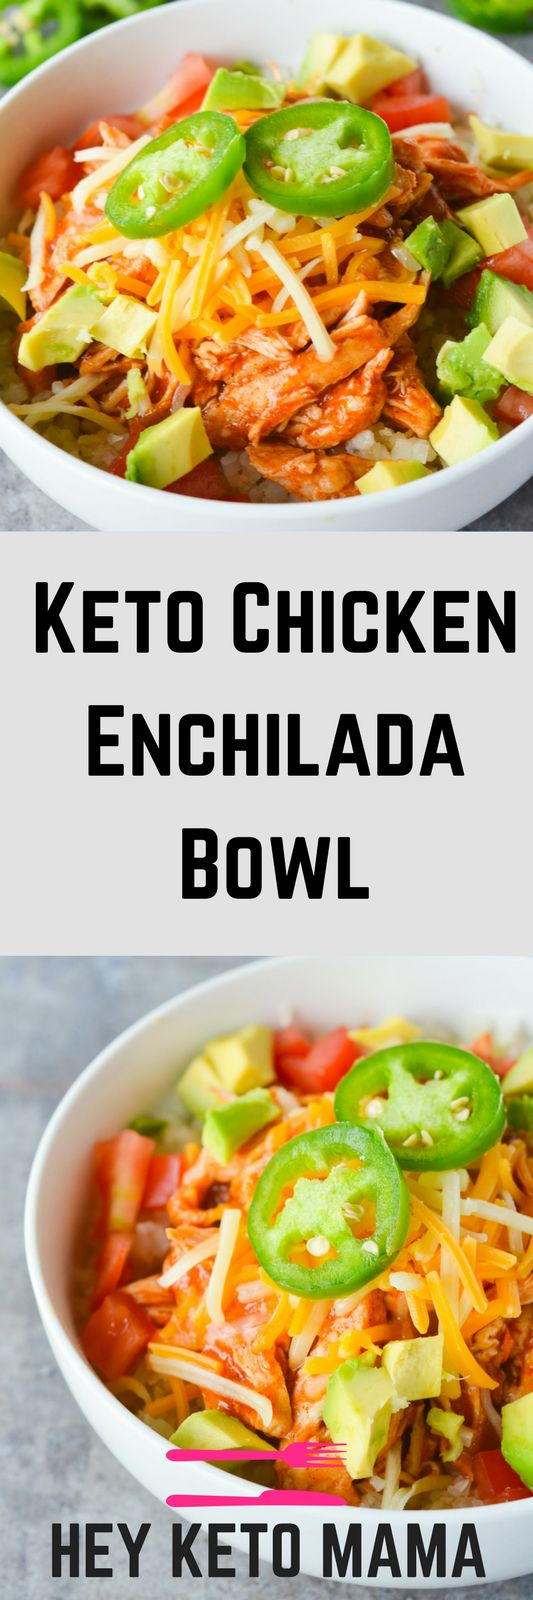 KETO CHICKEN ENCHILADA BOWL #KETO #CHICKEN #ENCHILADA #BOWL   #DESSERTS #HEALTHYFOOD #EASY_RECIPES #DINNER #LAUCH #DELICIOUS #EASY #HOLIDAYS #RECIPE #SPECIAL_DIET #WORLD_CUISINE #CAKE #GRILL #APPETIZERS #HEALTHY_RECIPES #DRINKS #COOKING_METHOD #ITALIAN_RECIPES #MEAT #VEGAN_RECIPES #COOKIES #PASTA #FRUIT #SALAD #SOUP_APPETIZERS #NON_ALCOHOLIC_DRINKS #MEAL_PLANNING #VEGETABLES #SOUP #PASTRY #CHOCOLATE #DAIRY #ALCOHOLIC_DRINKS #BULGUR_SALAD #BAKING #SNACKS #BEEF_RECIPES #MEAT_APPETIZERS #MEXICAN_RECIPES #BREAD #ASIAN_RECIPES #SEAFOOD_APPETIZERS #MUFFINS #BREAKFAST_AND_BRUNCH #CONDIMENTS #CUPCAKES #CHEESE #CHICKEN_RECIPES #PIE #COFFEE #NO_BAKE_DESSERTS #HEALTHY_SNACKS #SEAFOOD #GRAIN #LUNCHES_DINNERS #MEXICAN #QUICK_BREAD #LIQUOR